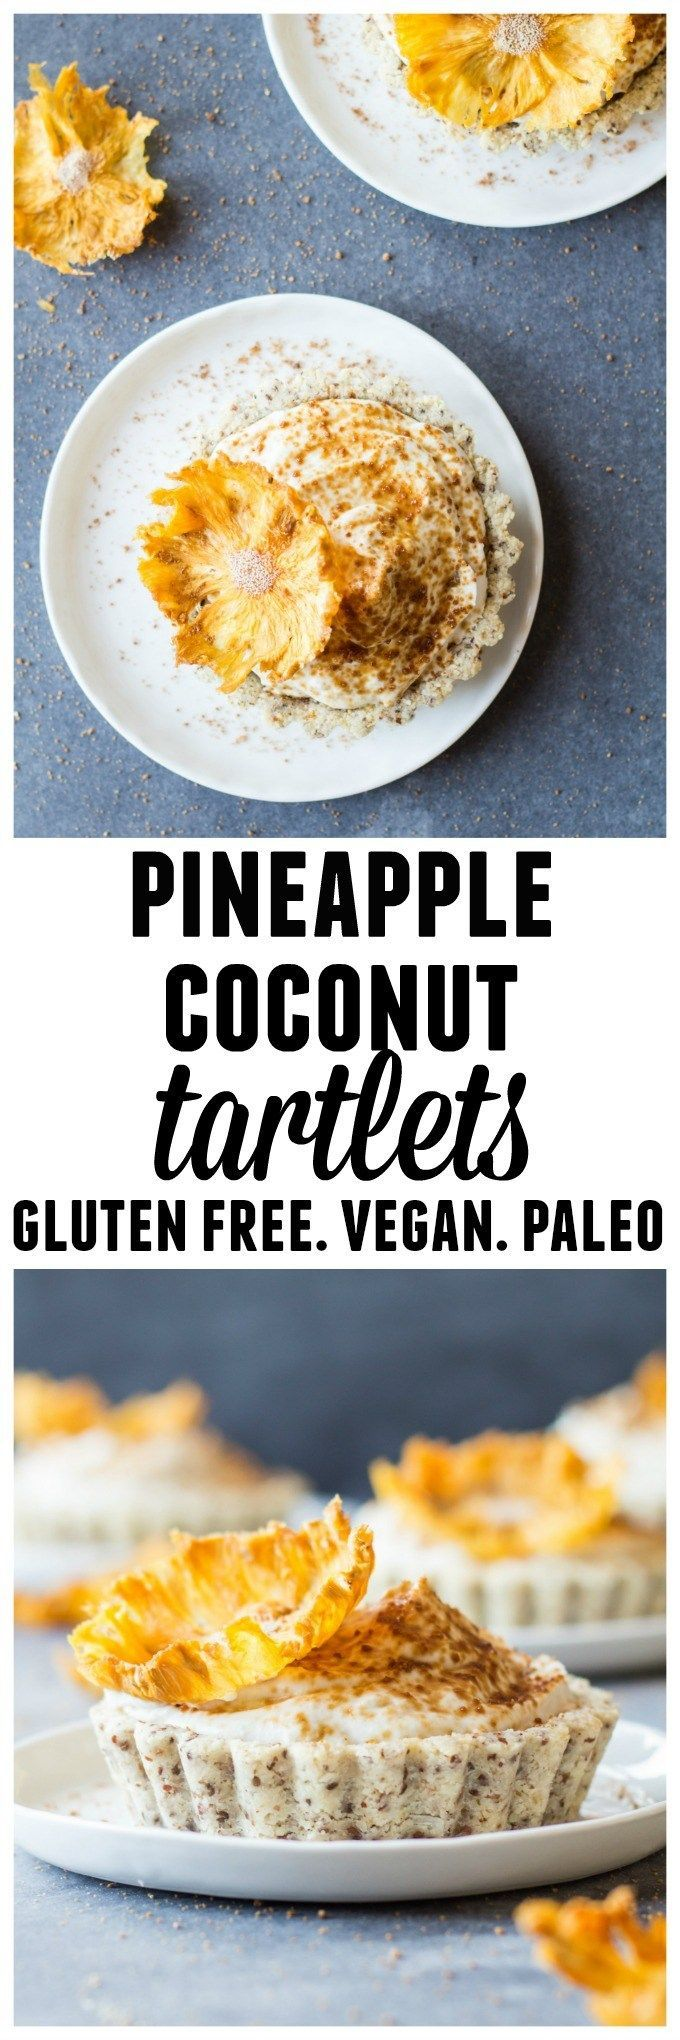 """Green Healthy Cooking's beautiful and elegant recipe for dairy free pineapple coconut tartlets topped with edible pineapple """"flowers."""" An amazing dessert! // Paleo dessert / #vegan #glutenfree #paleo #dessert #recipe #clairekcreations"""